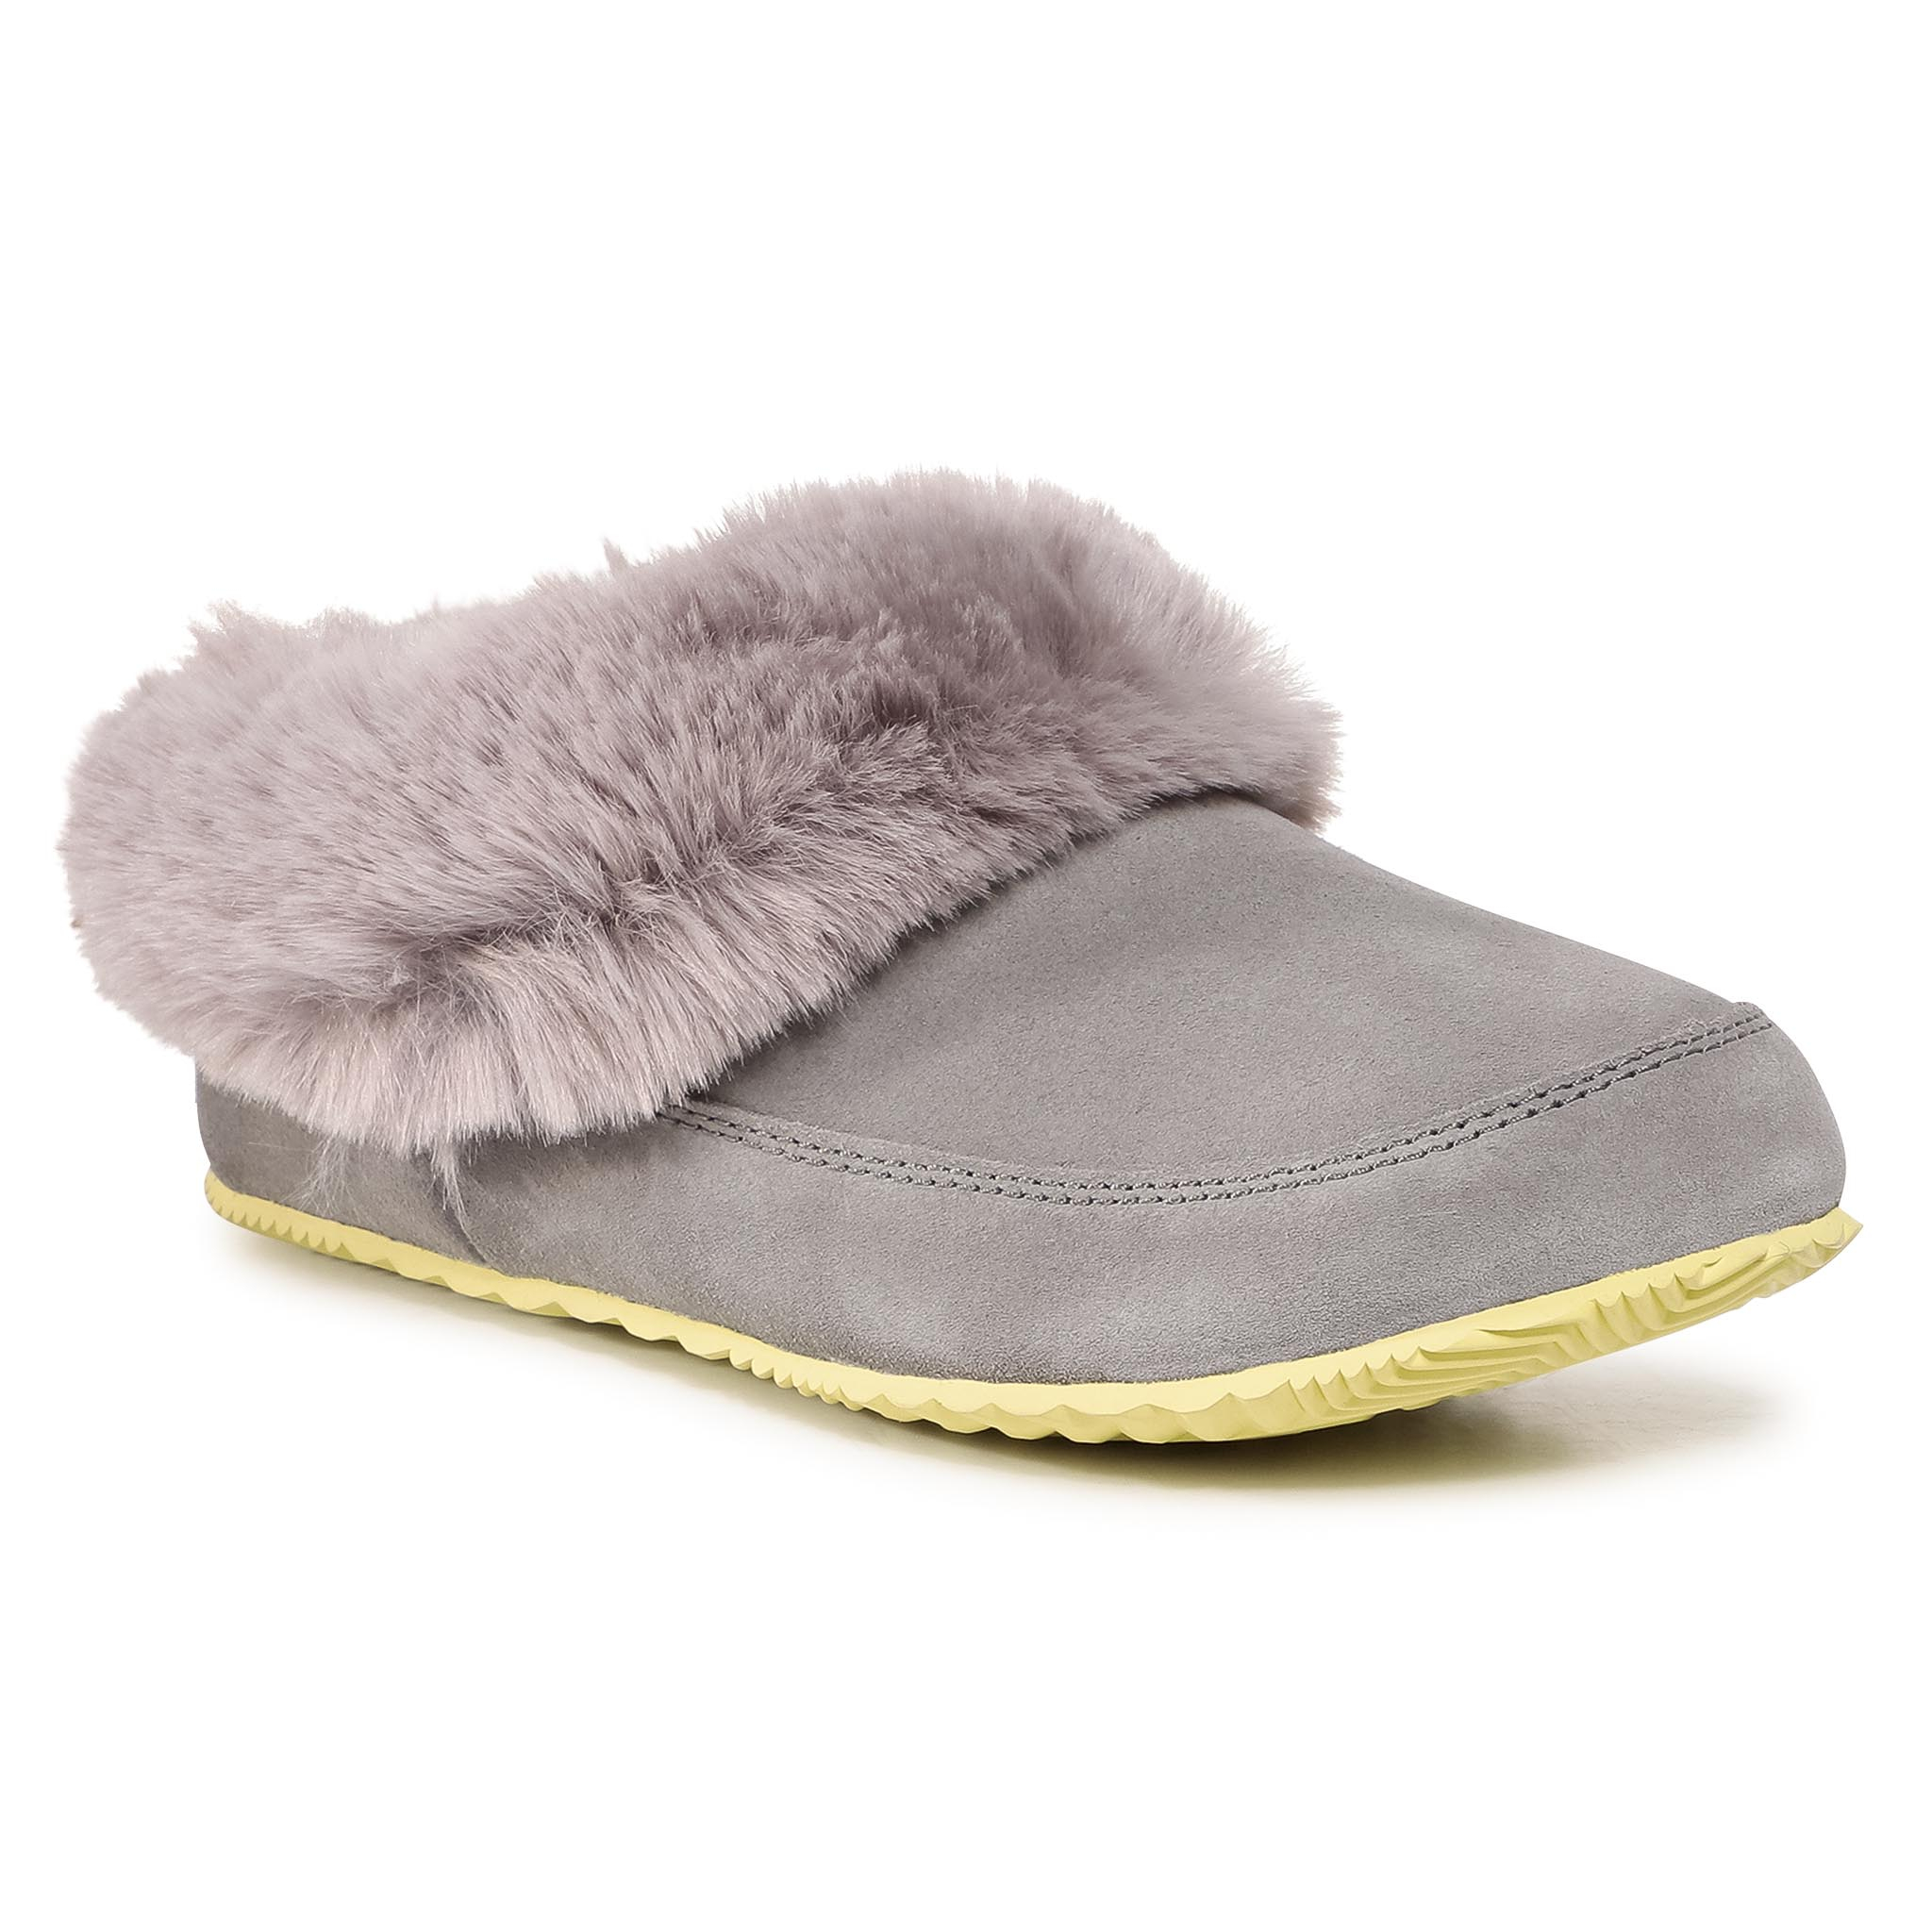 Pantuflas SOREL - Go™ - Coffee Run NL3692 Quarry 052